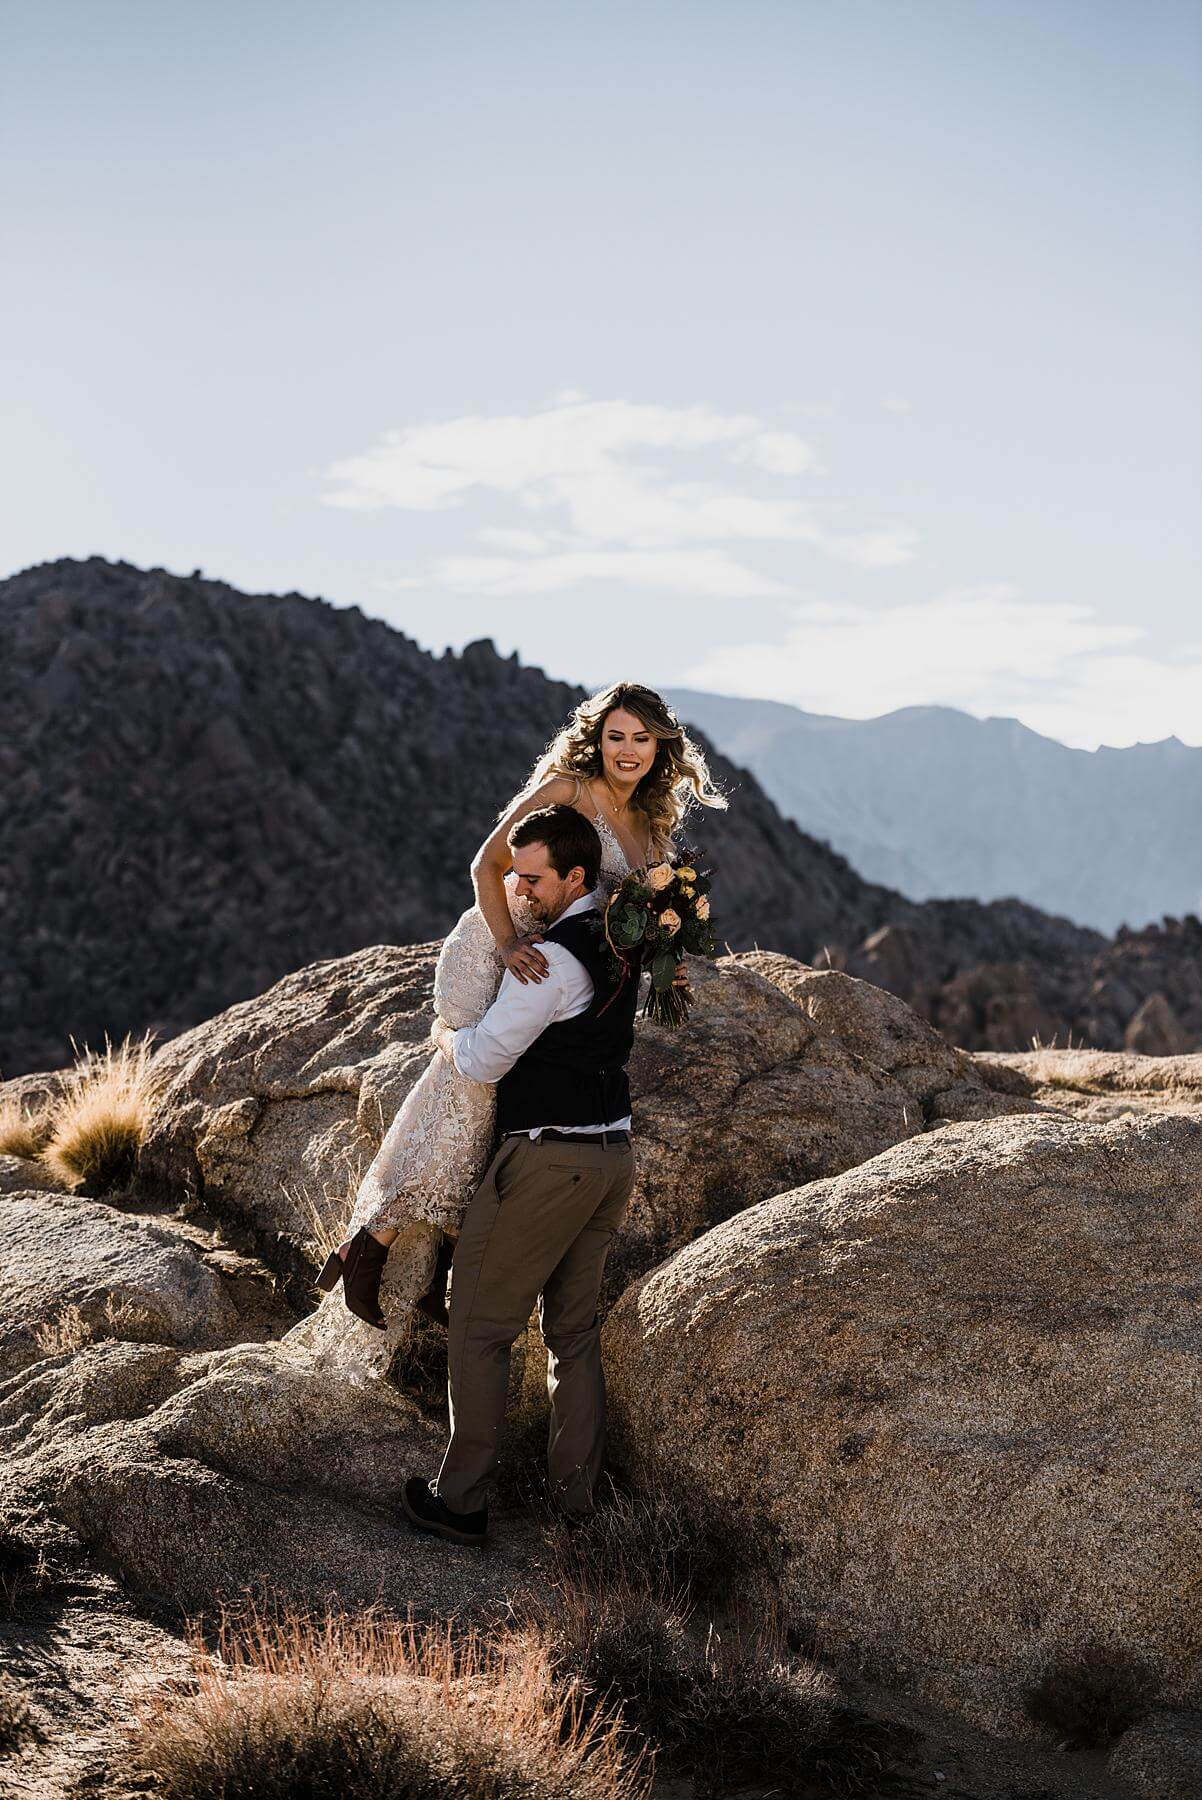 S Photography,adventure,alabama hills,boho,desert,elopement,indie,intimate wedding,lone pine,mobius arch,wedding,whitney portal,